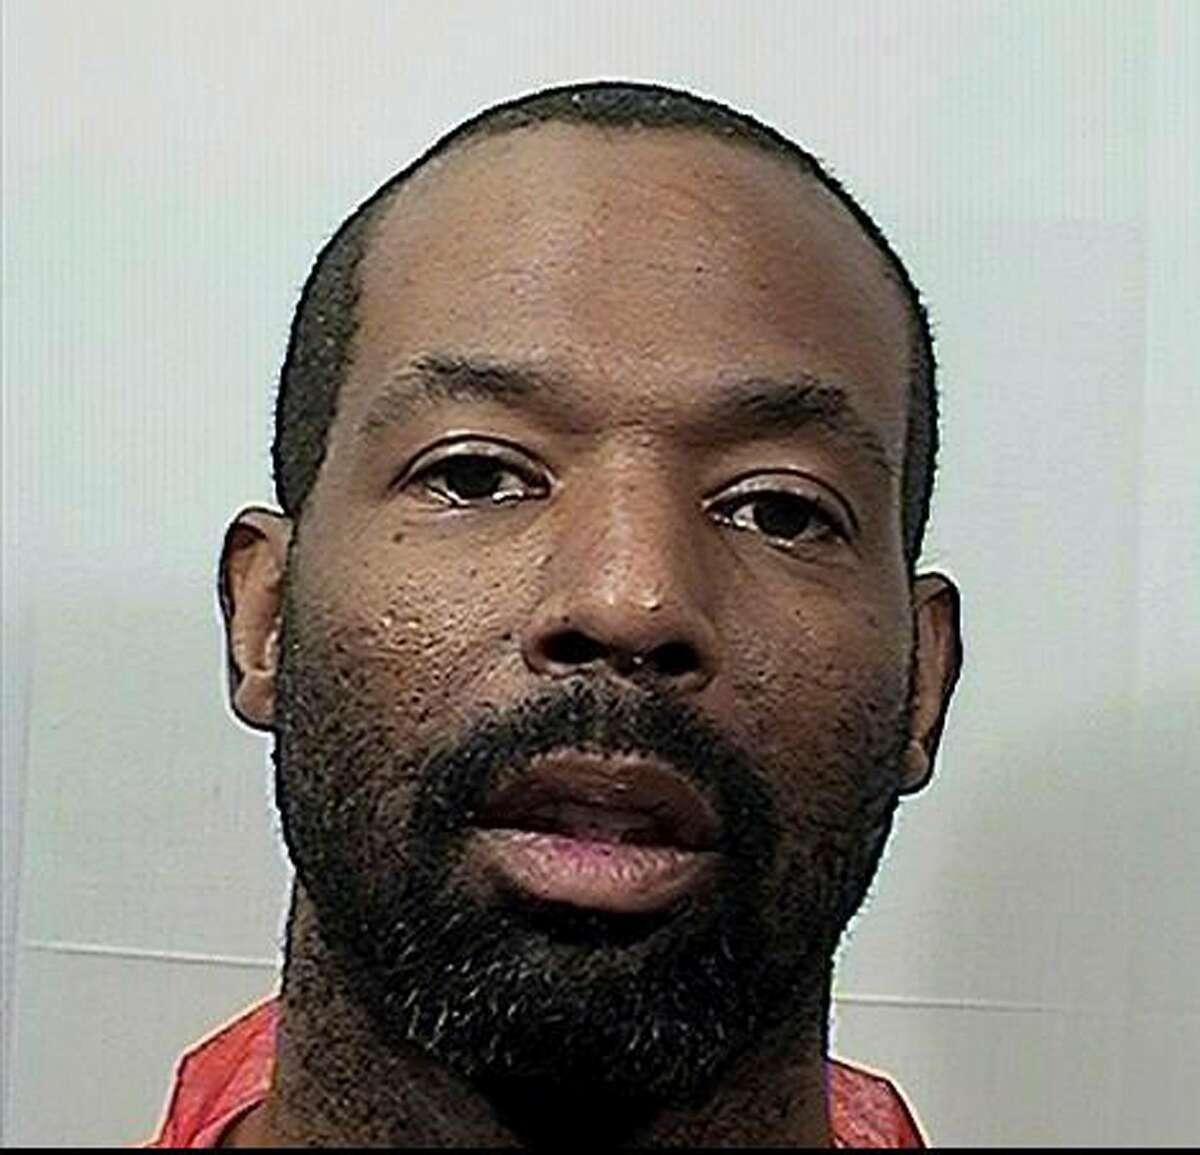 """In this March 20, 2018, photo released by the California Department of Corrections and Rehabilitation is Napoleon Brown. San Francisco's mayor has joined other members of her family in requesting an early release from prison for an older brother who has served nearly two decades of a 44-year sentence on a manslaughter conviction. Mayor London Breed sent a letter to outgoing Gov. Jerry Brown in late October asking him to """"consider leniency"""" and commute the sentence of Napoleon Brown, who struggled with drugs from a young age, the San Francisco Chronicle reported Wednesday, Dec. 19, 2018. (California Department of Corrections and Rehabilitation via AP)"""